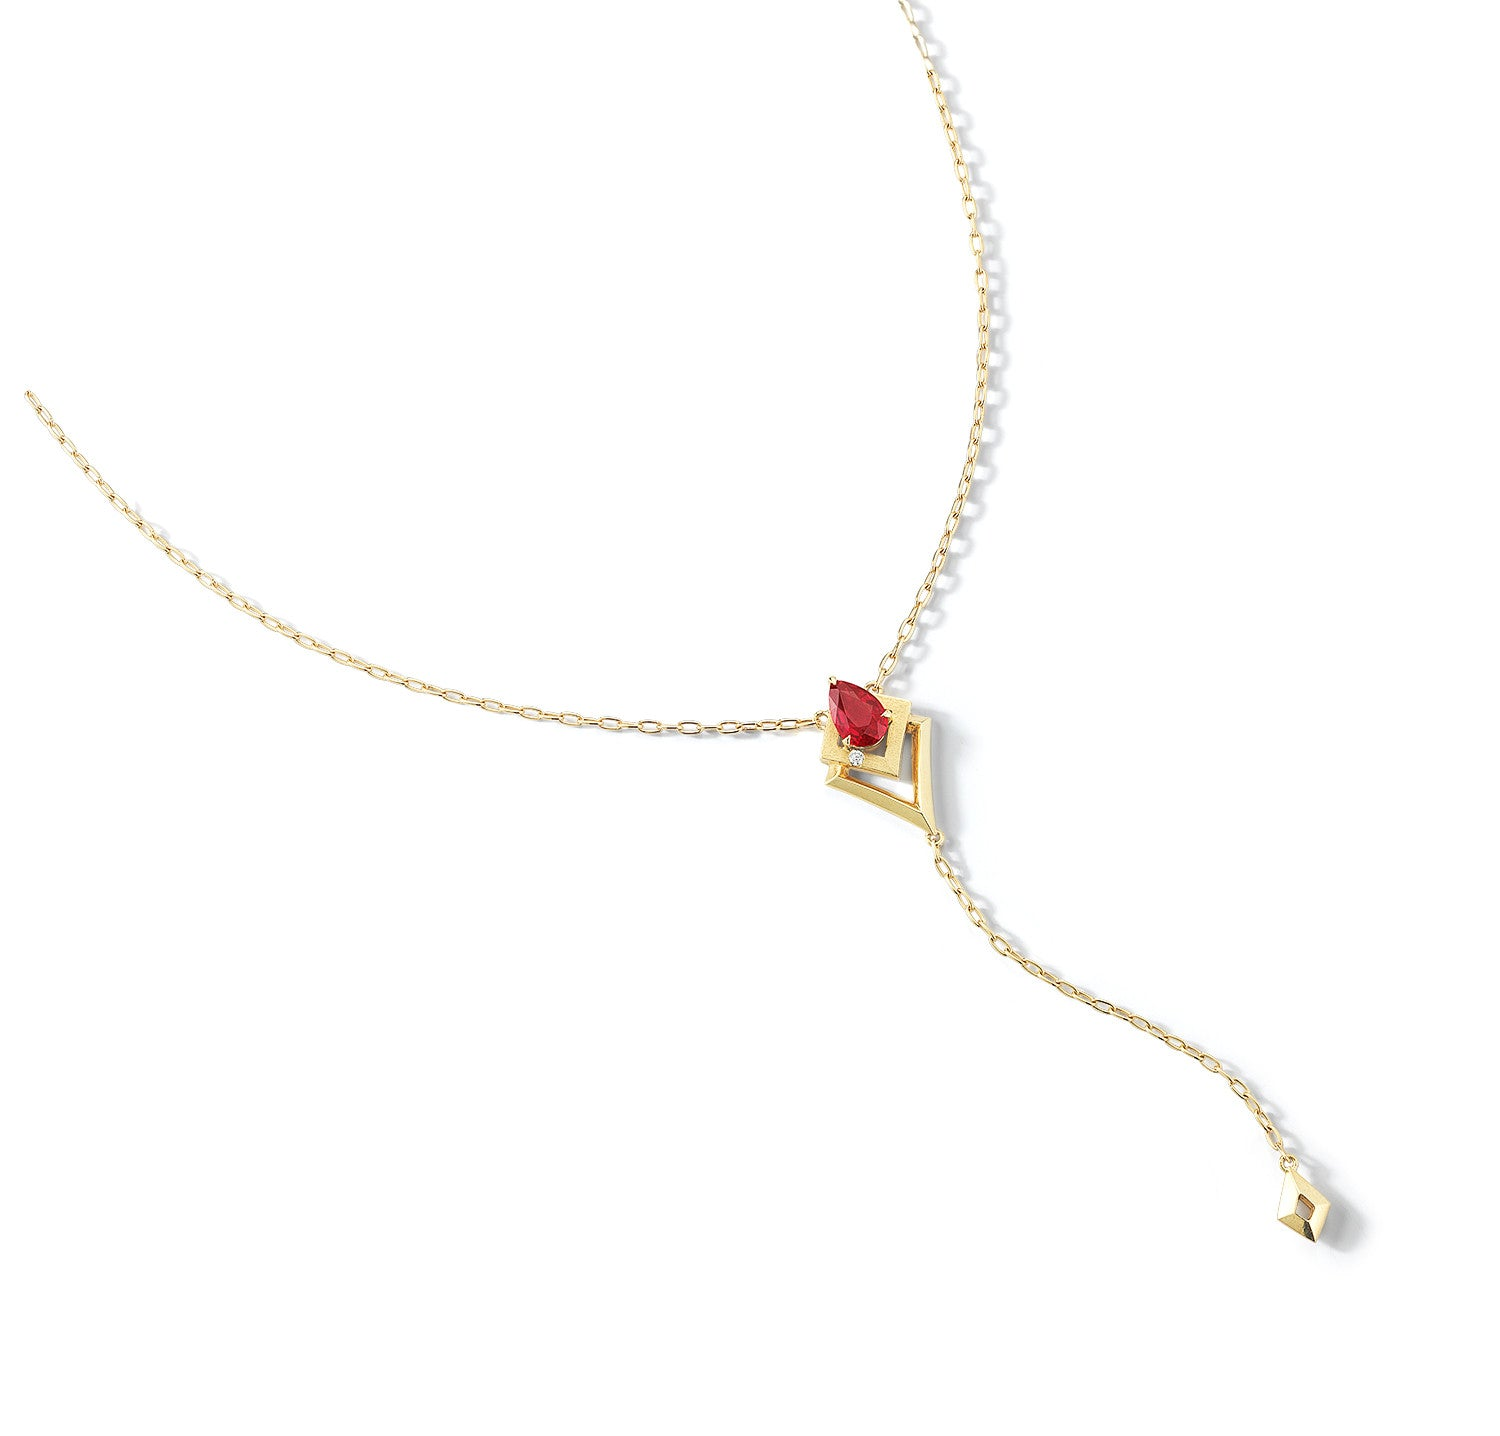 jewelry the in with pink wrapped filled sapphire red necklace emma ruby statement design gold jewellery wire